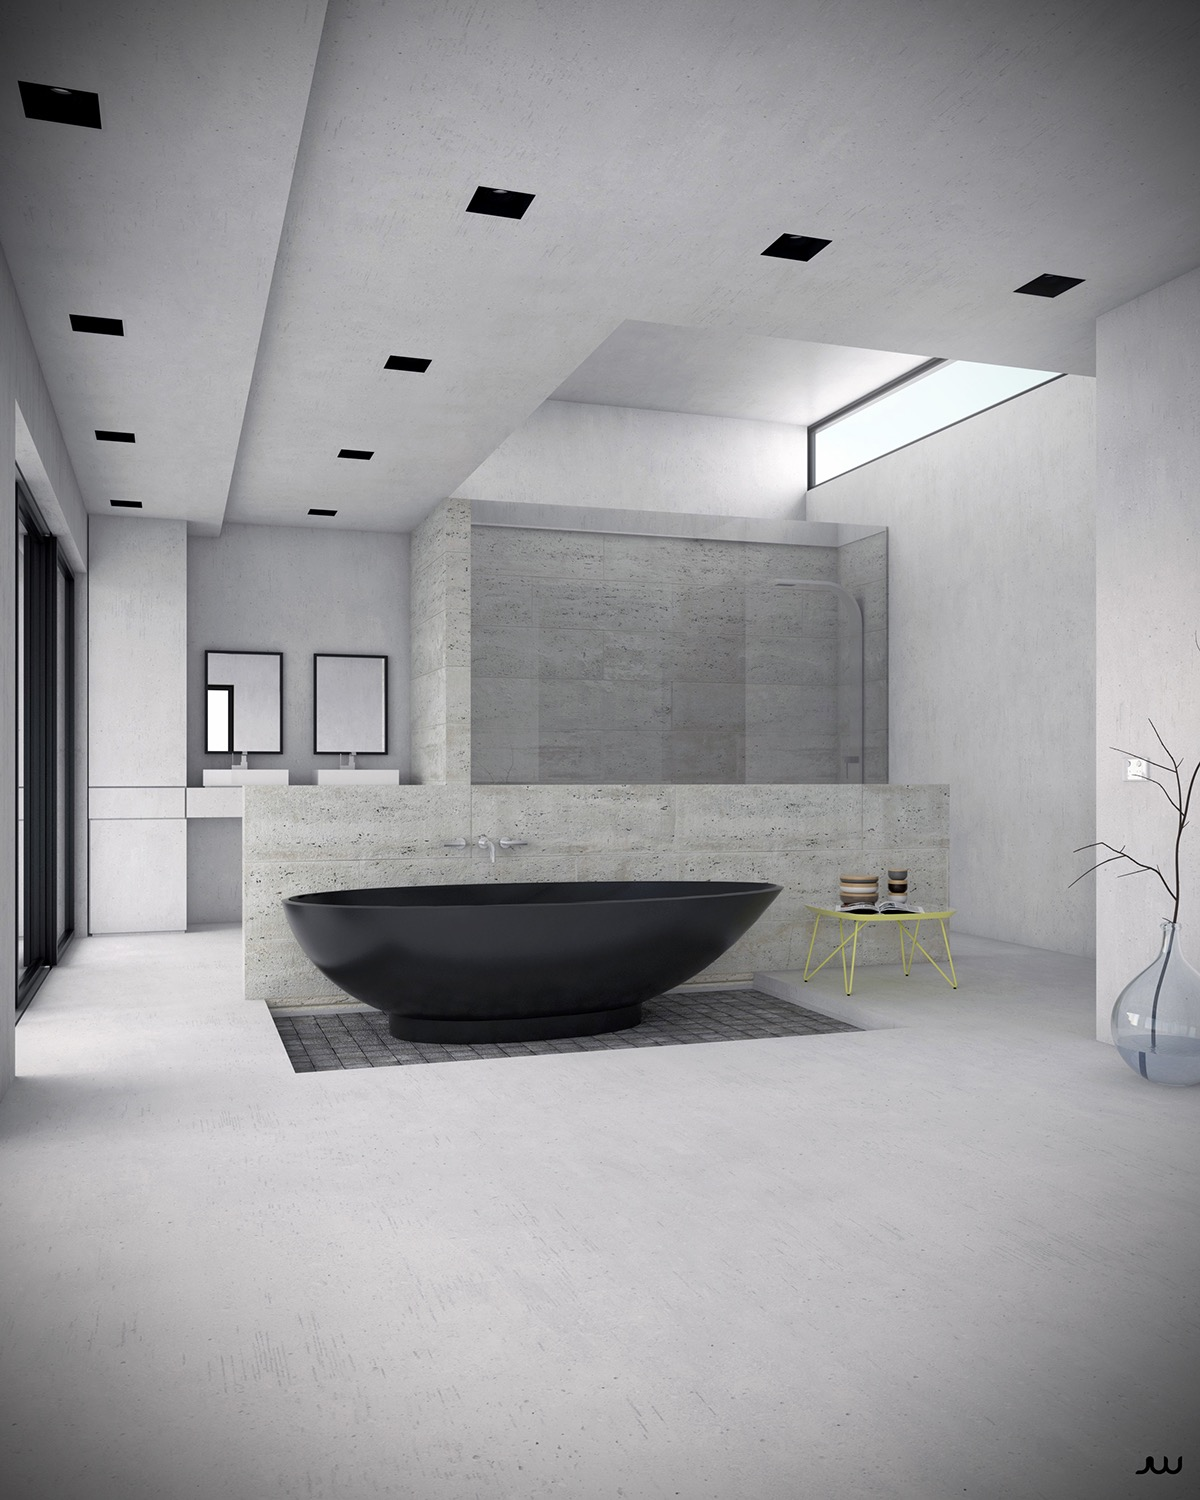 Bathtub Design Ideas 36 Bathtub Ideas With Luxurious Appeal